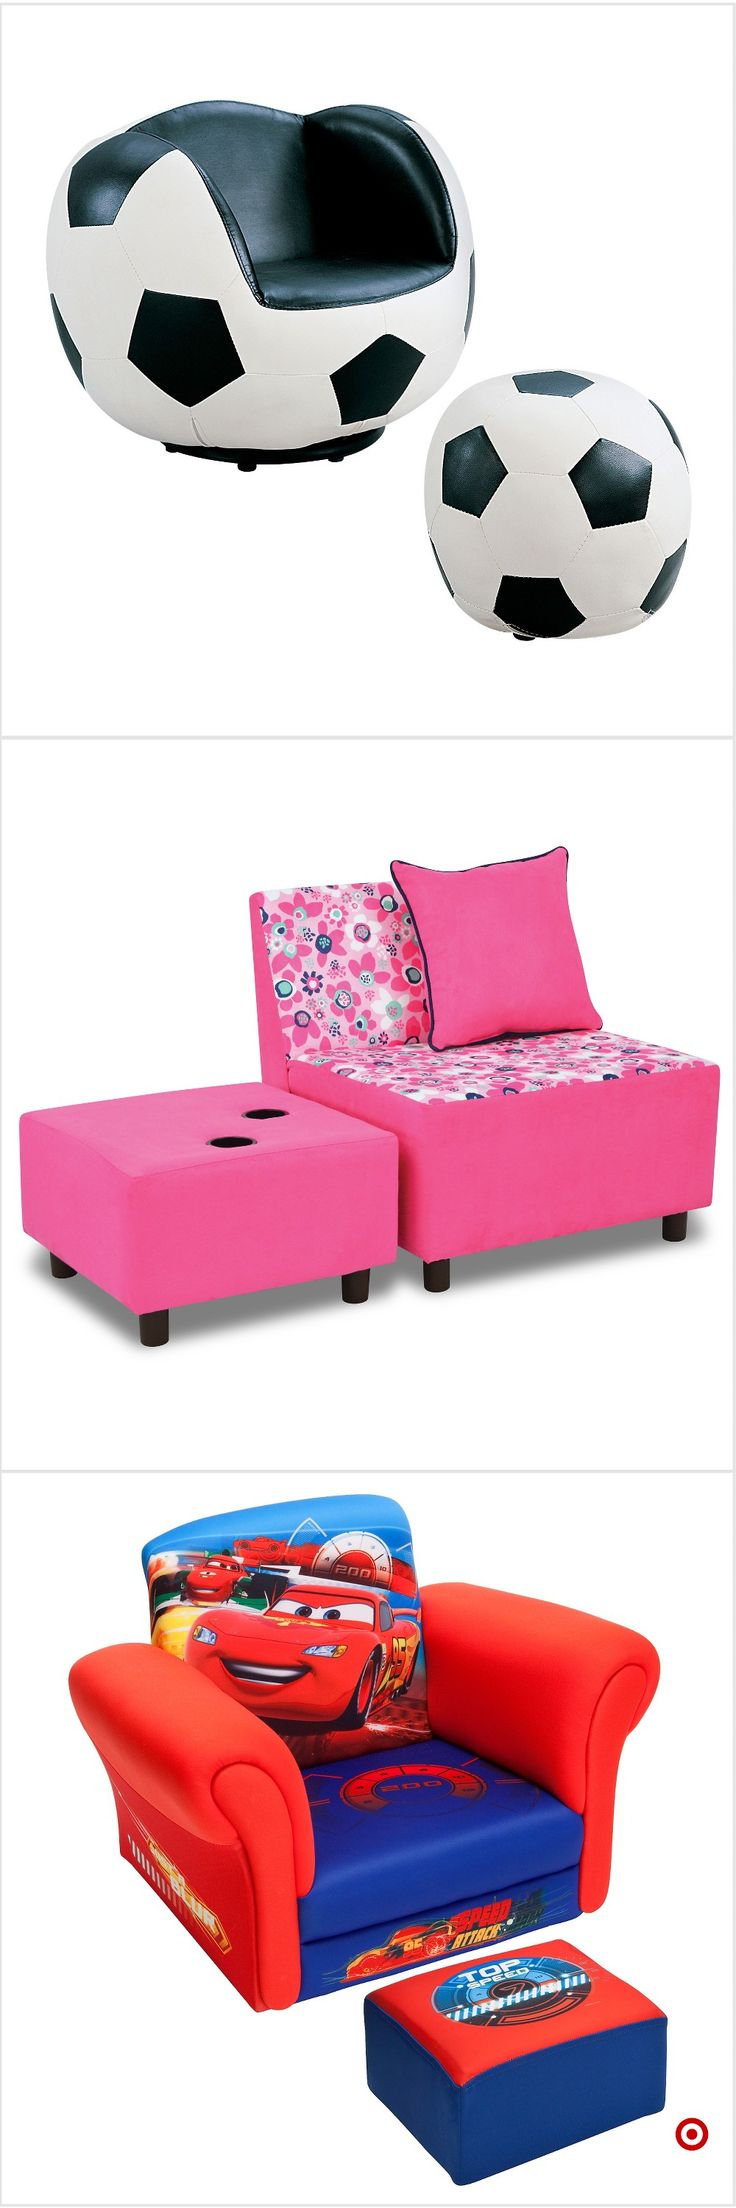 Shop Target for kids upholstered chair and ottoman set you will love at great lo...